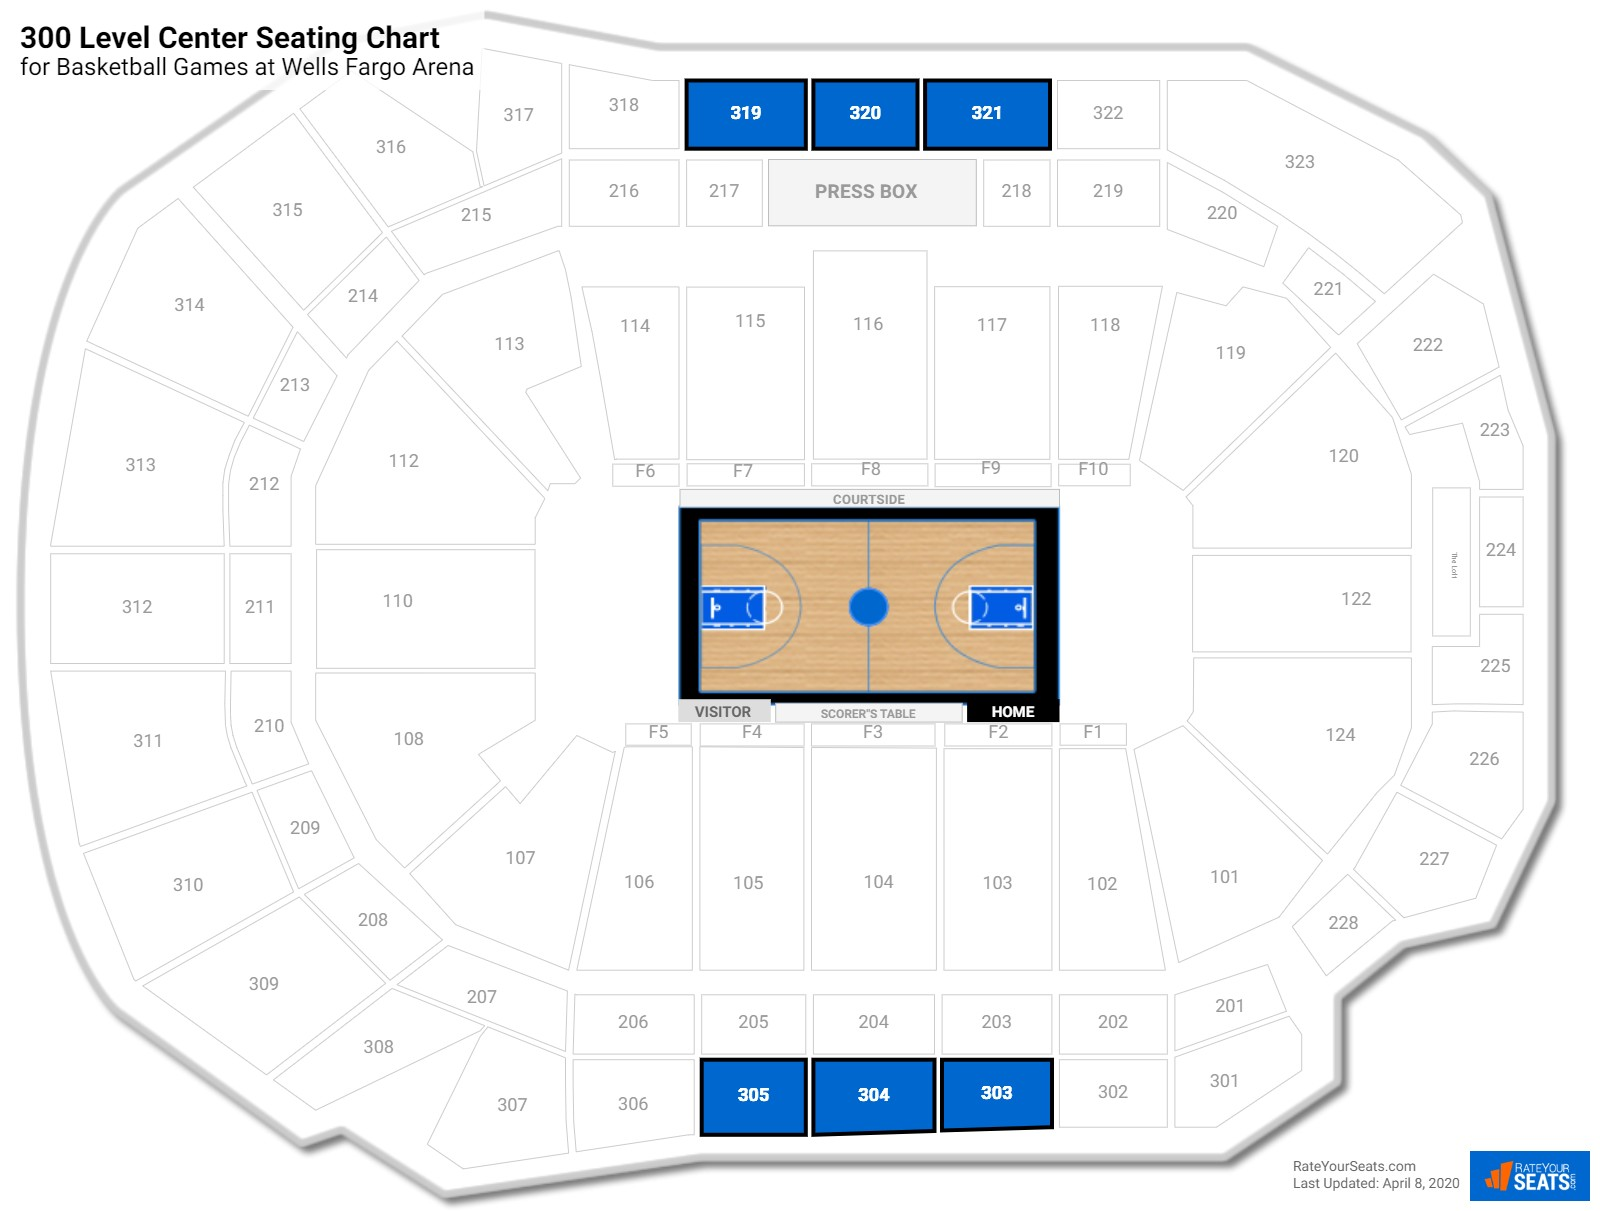 Wells Fargo Arena 300 Level Center seating chart